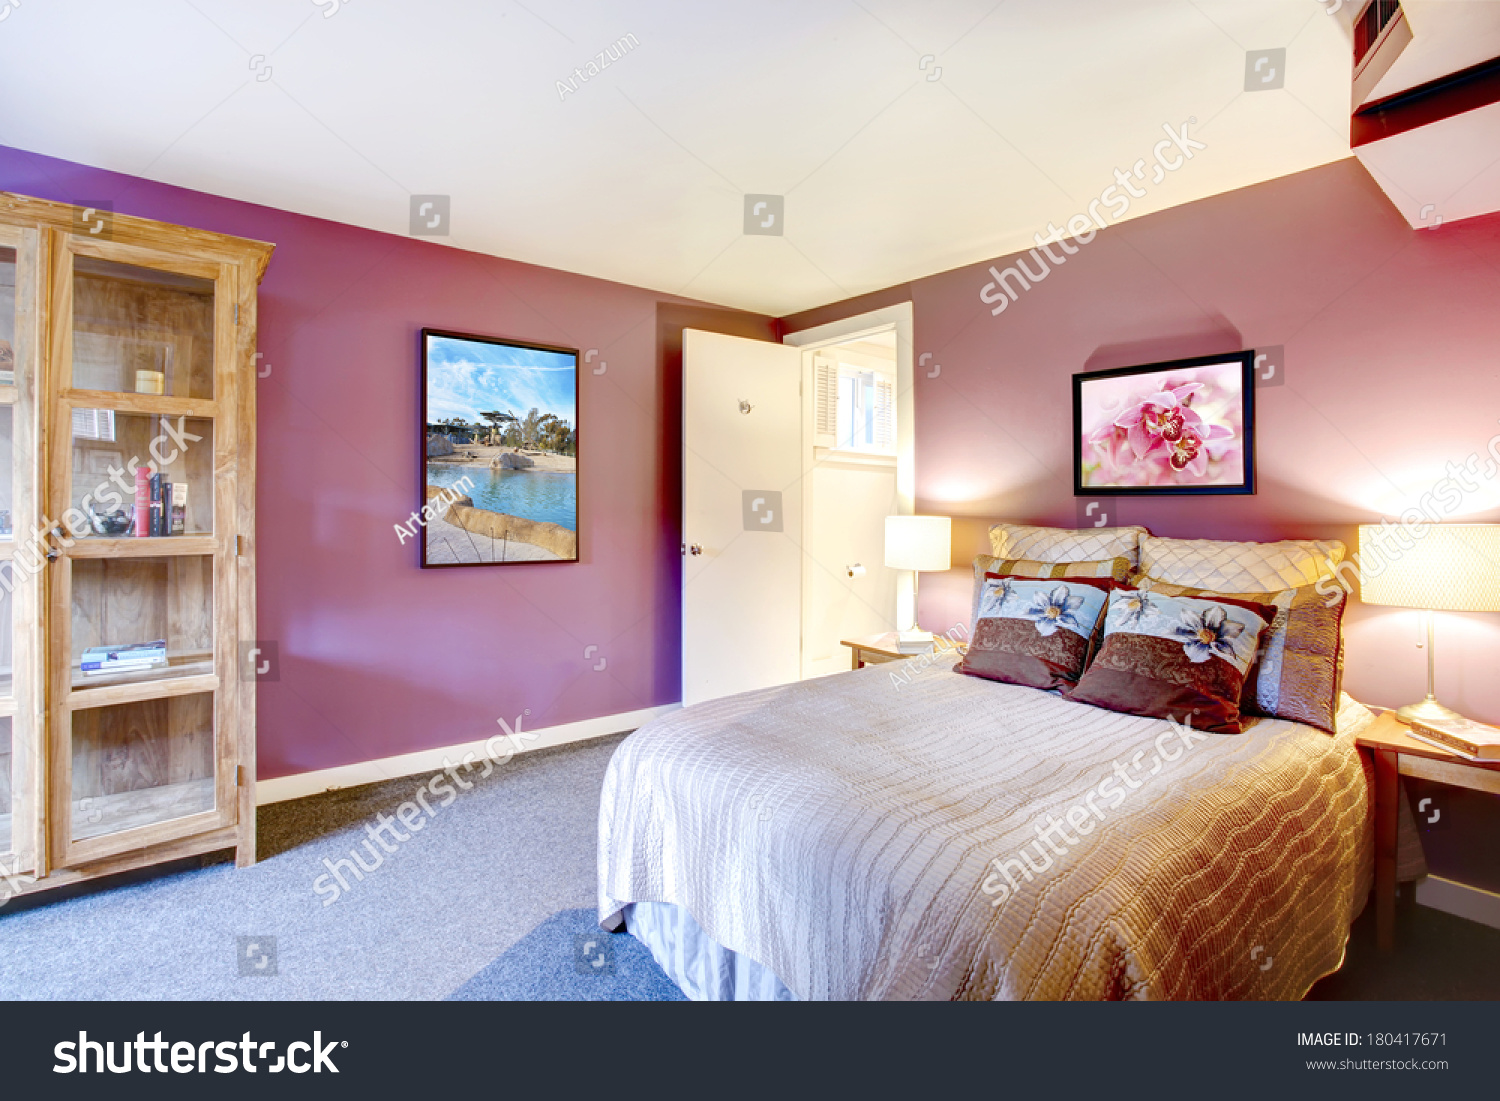 Elegant bedroom with beige carpet floor and contrast color bright red  walls  Green and purple. Elegant Bedroom Beige Carpet Floor Contrast Stock Photo 180417671